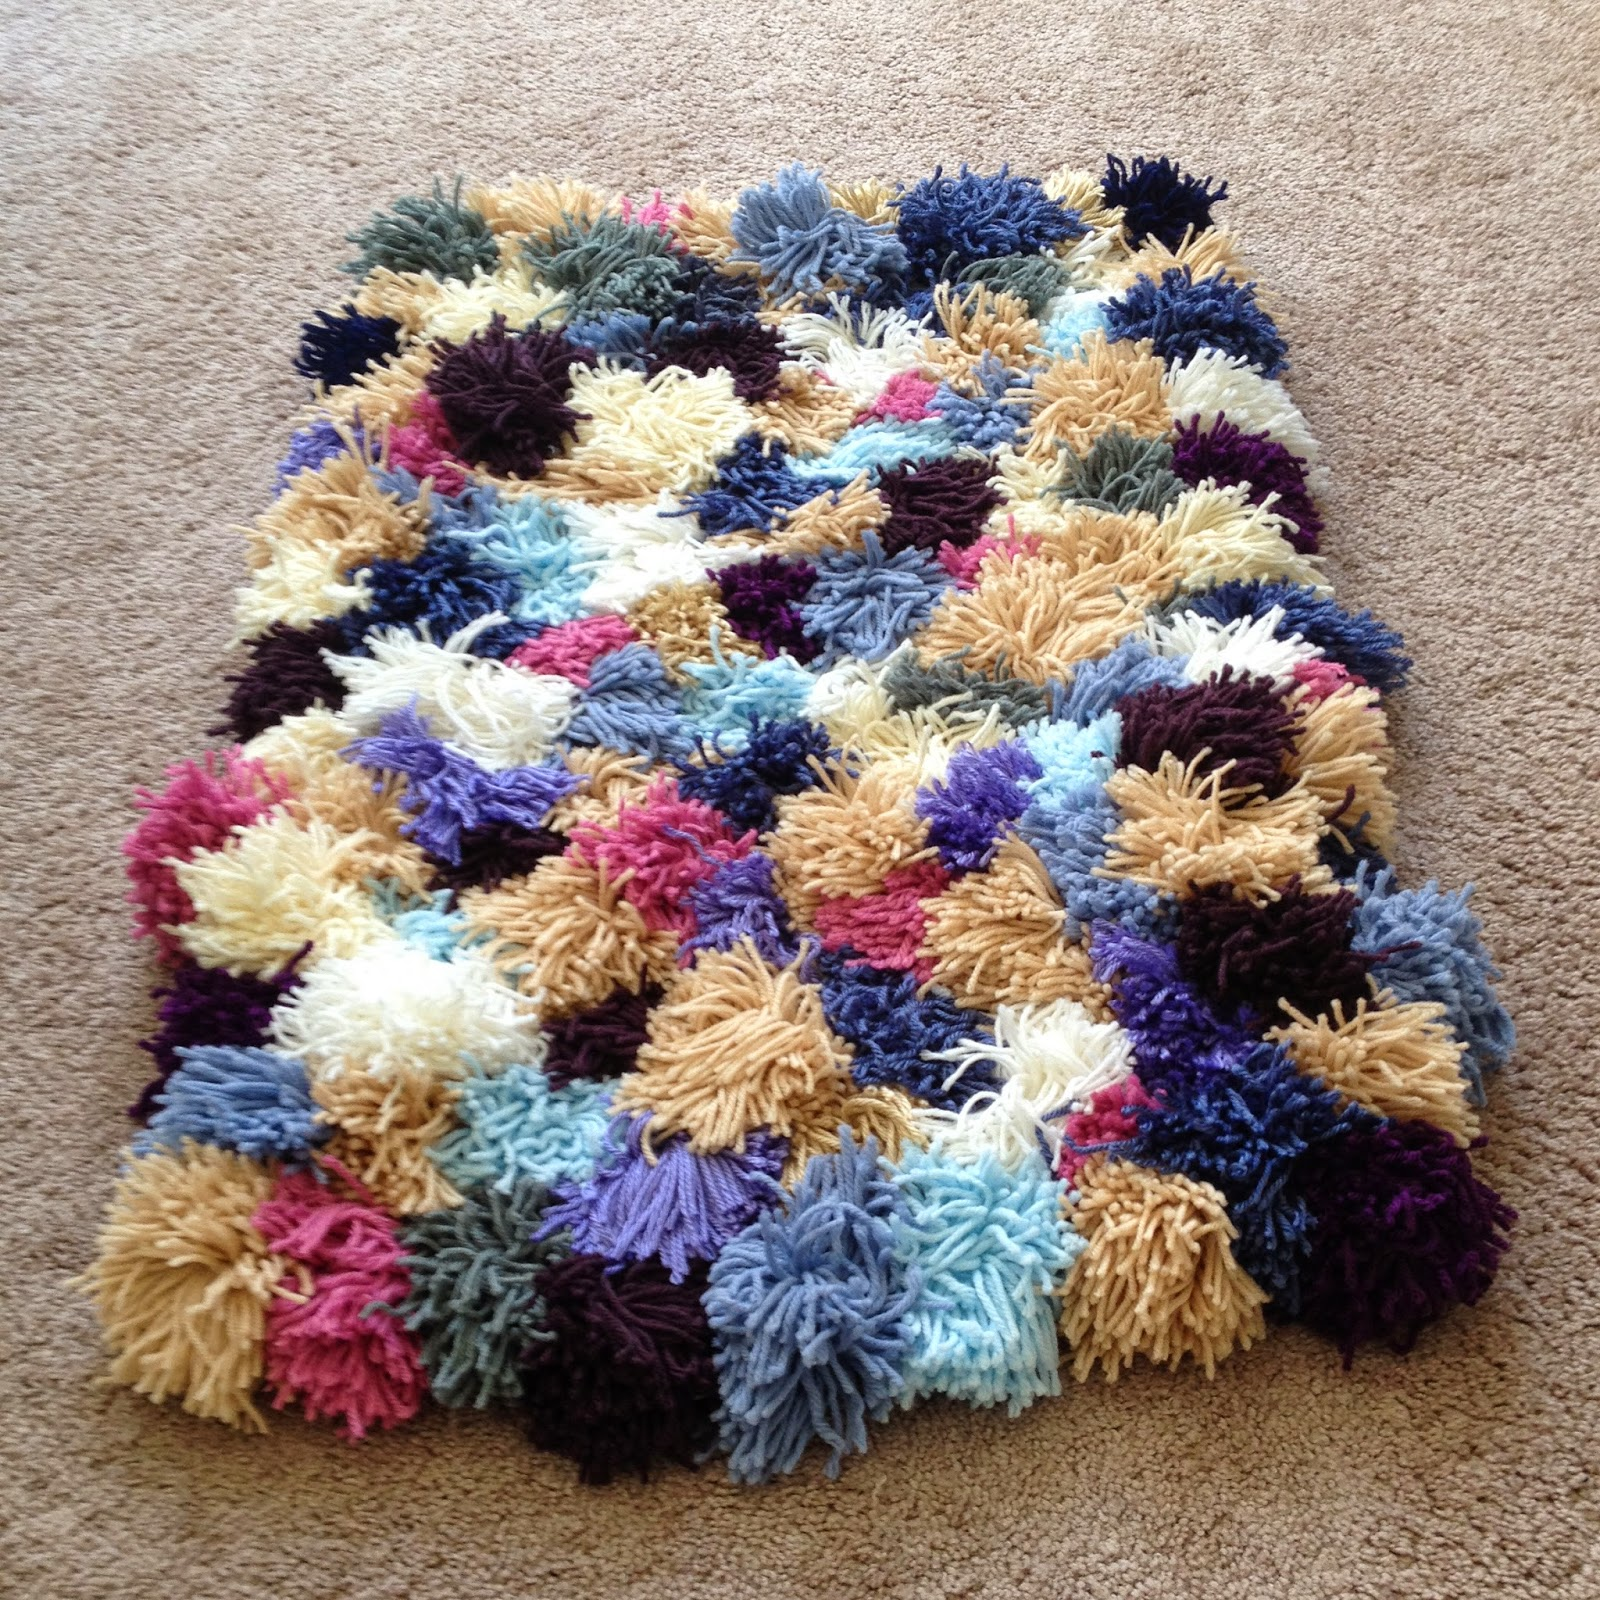 Design Diy Rug the crafty novice diy yarn rug rug